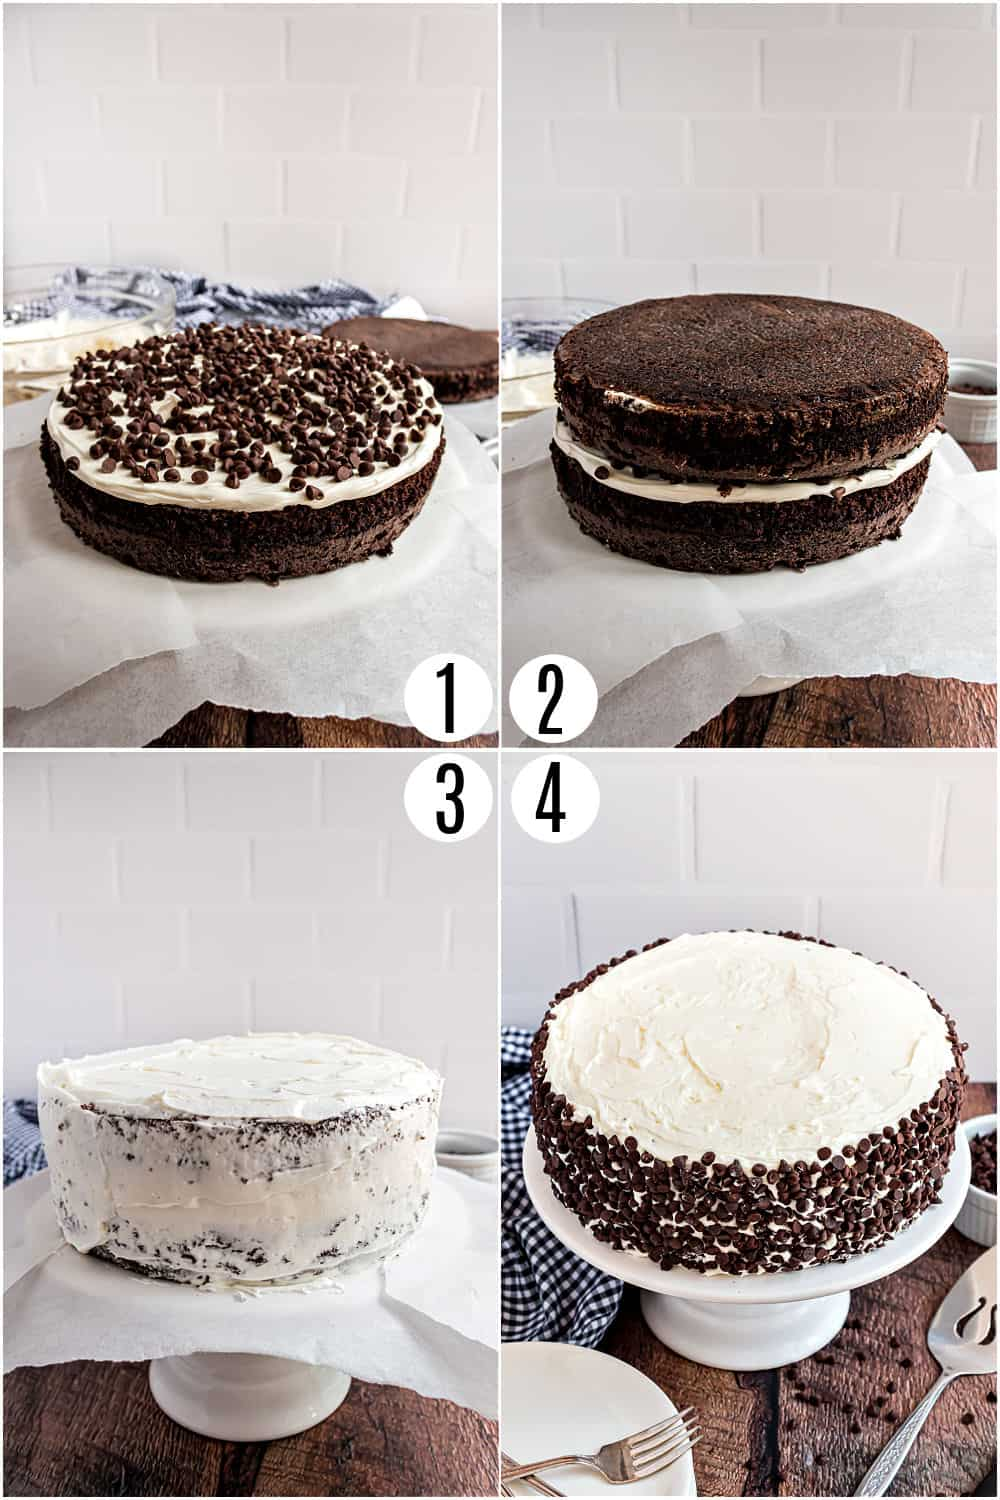 Step by step photos showing how to frost a chocolate cake with vanilla frosting.